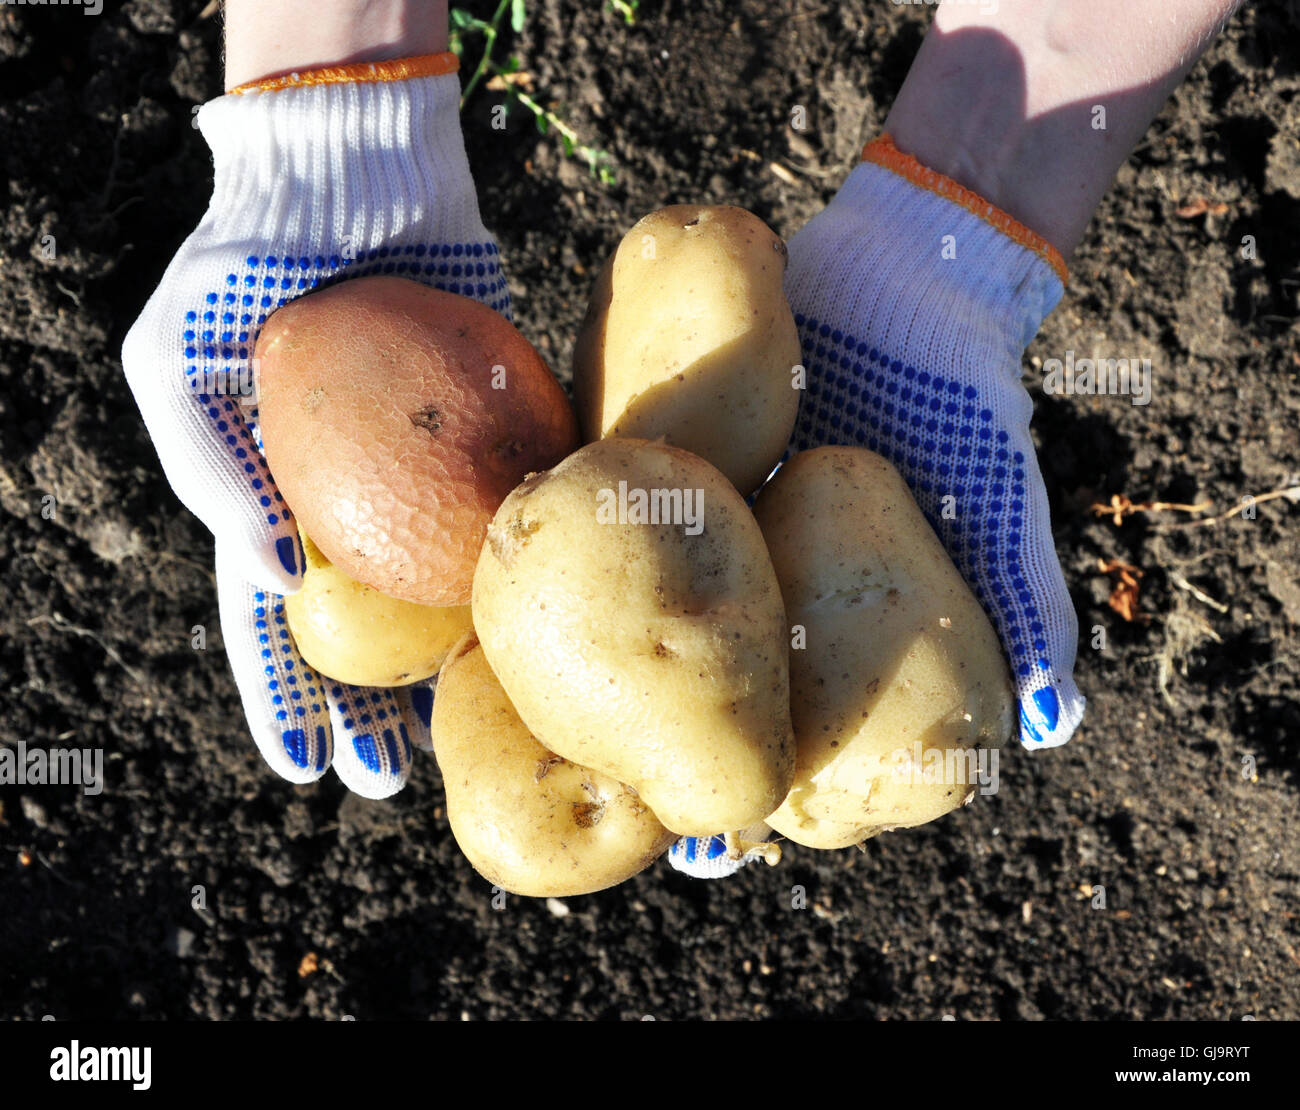 new potatoes - Stock Image